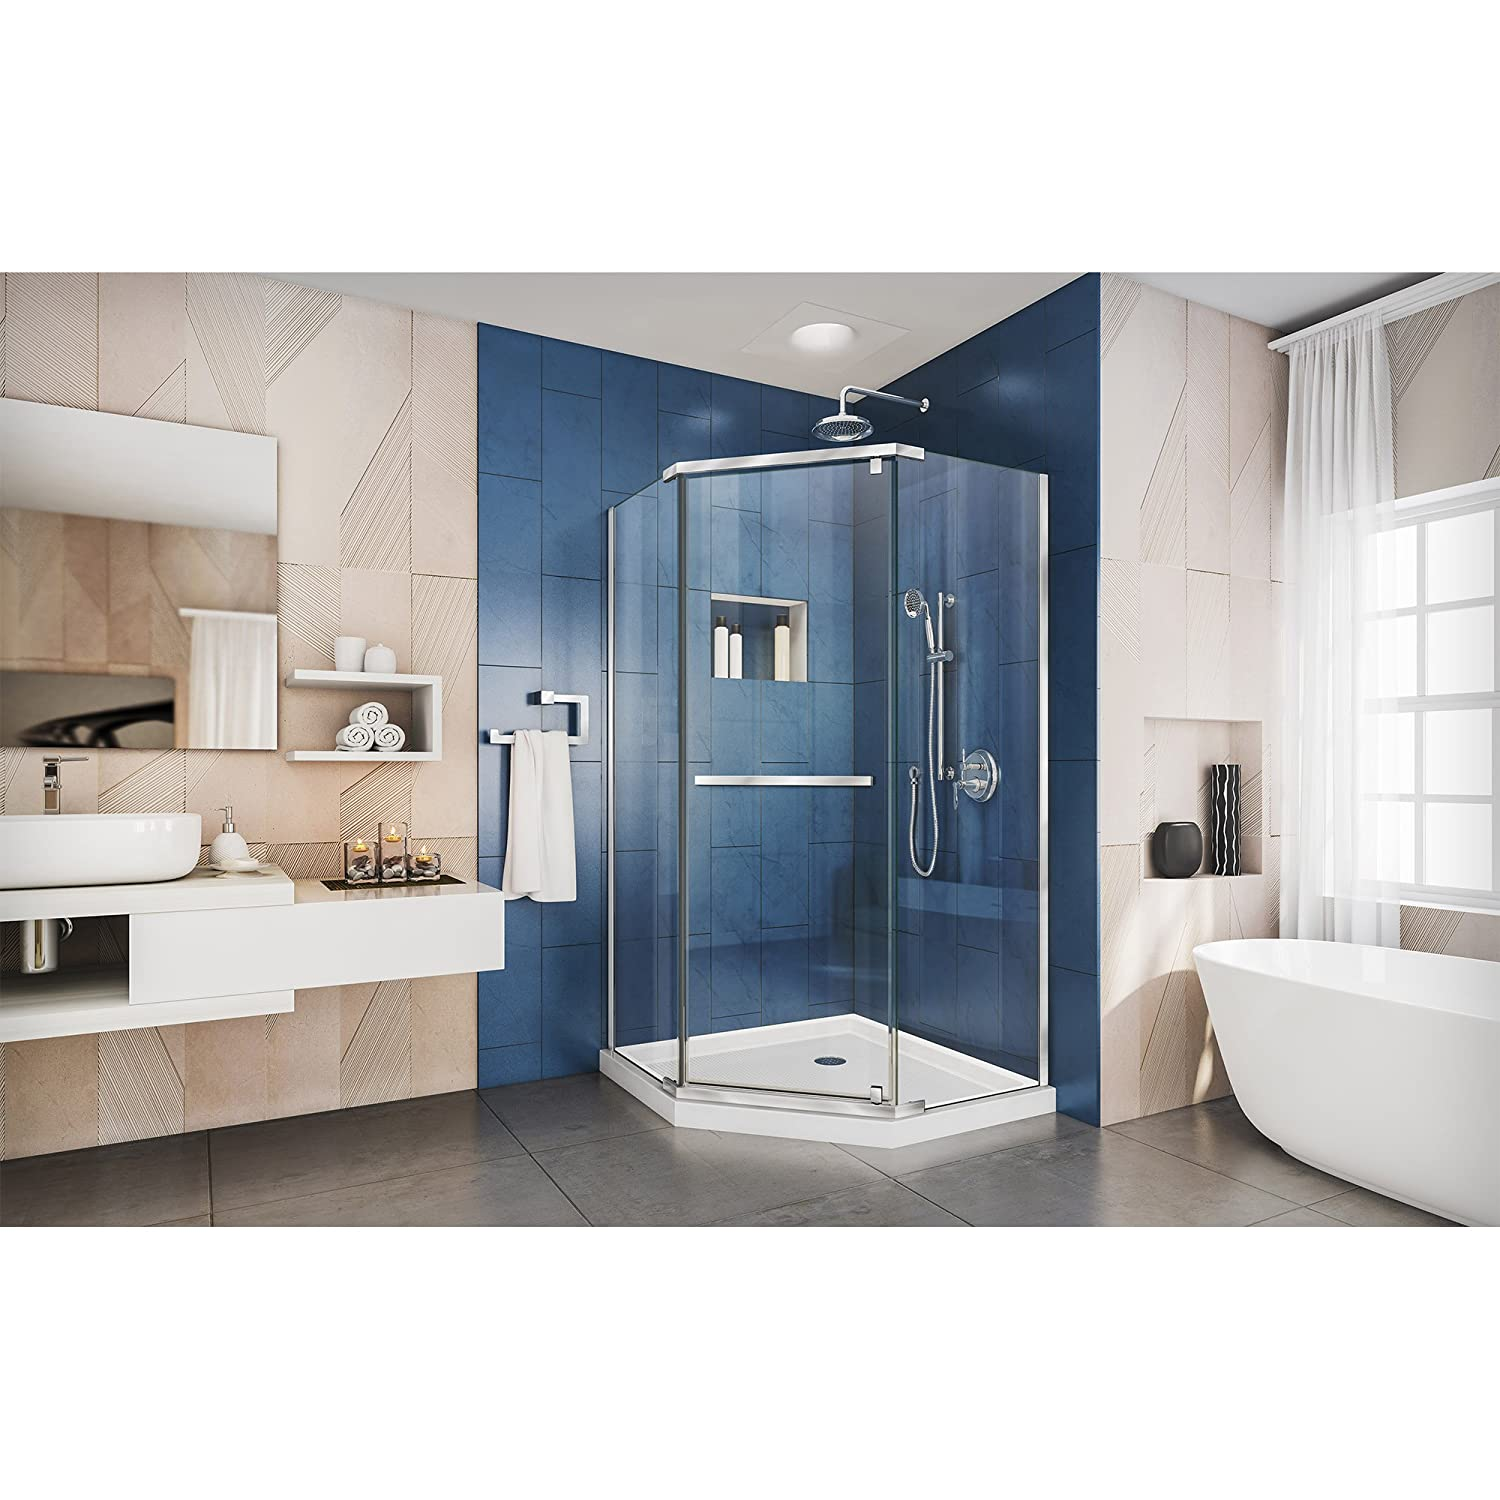 DreamLine DL-6033-22-01 Prism x 42 in. Frameless Pivot Corner Shower ...